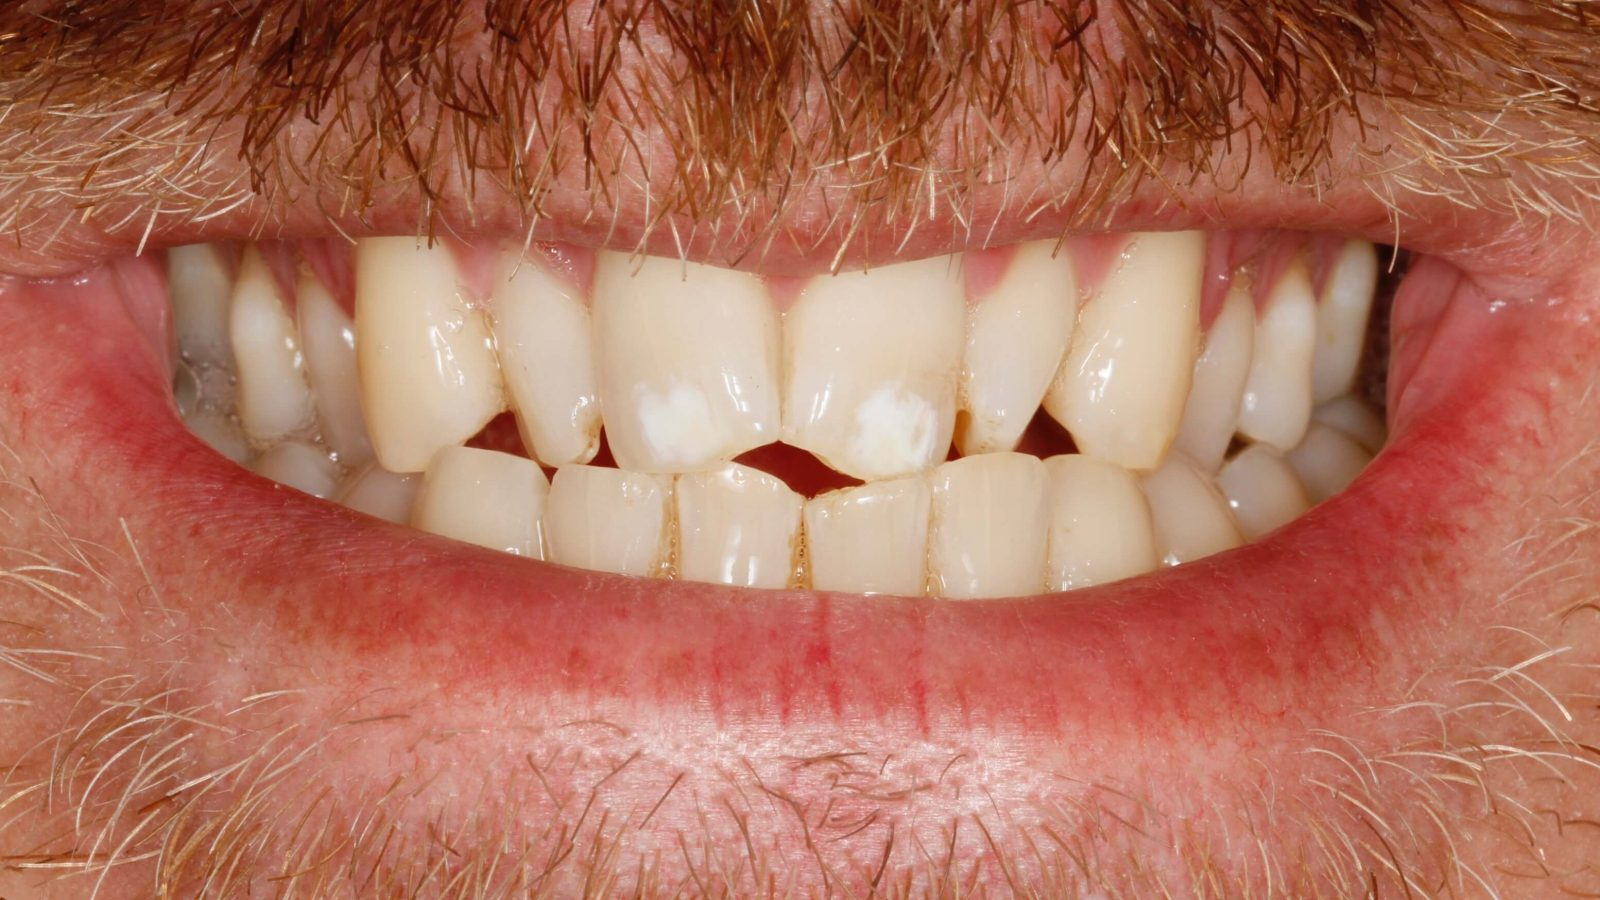 Jagged chipped teeth white patches